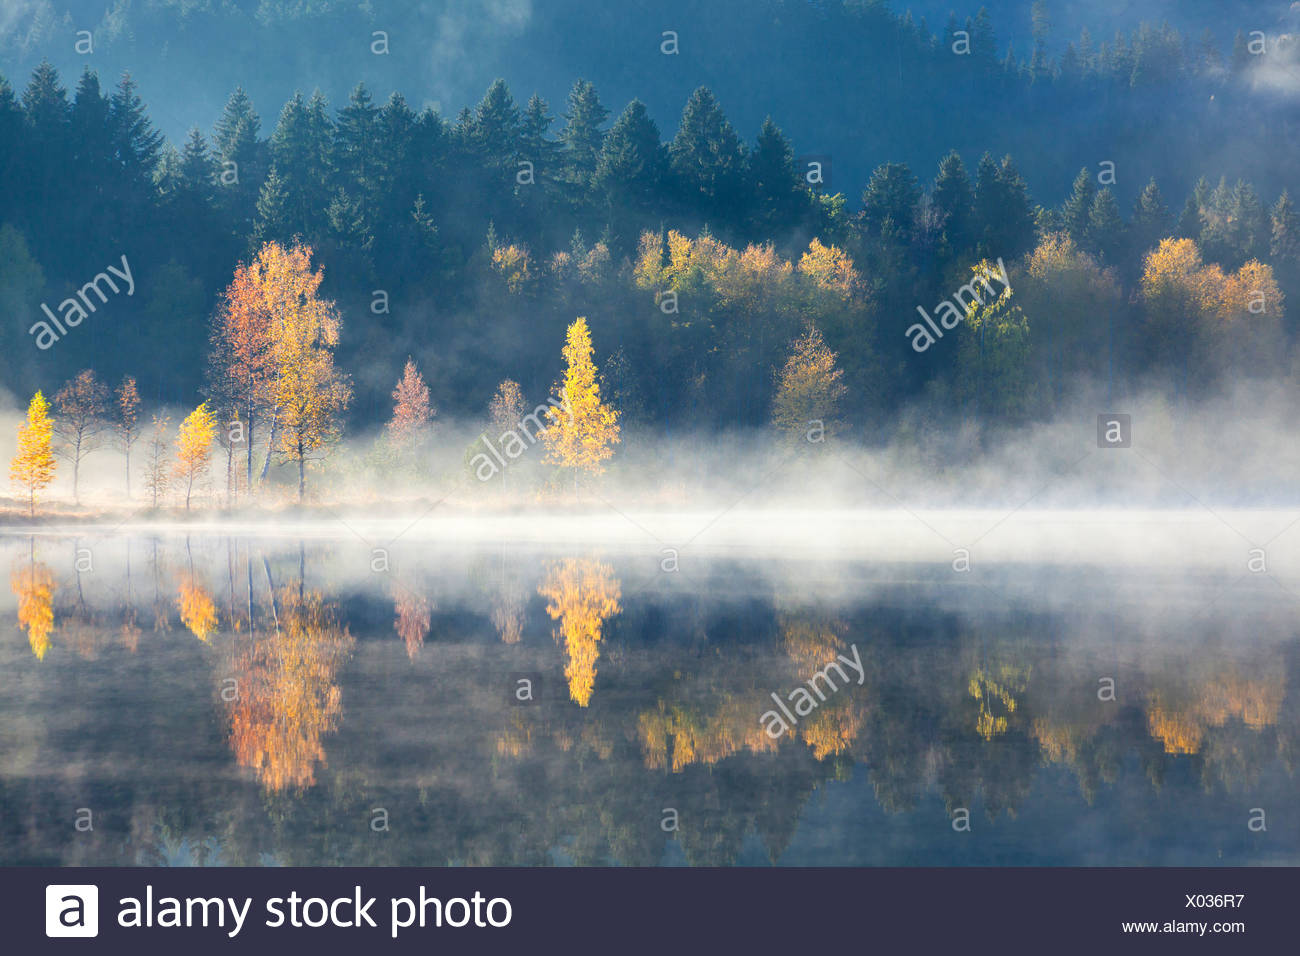 Schwarzsee and spruce forest, Tyrol, Austria, Europe - Stock Image